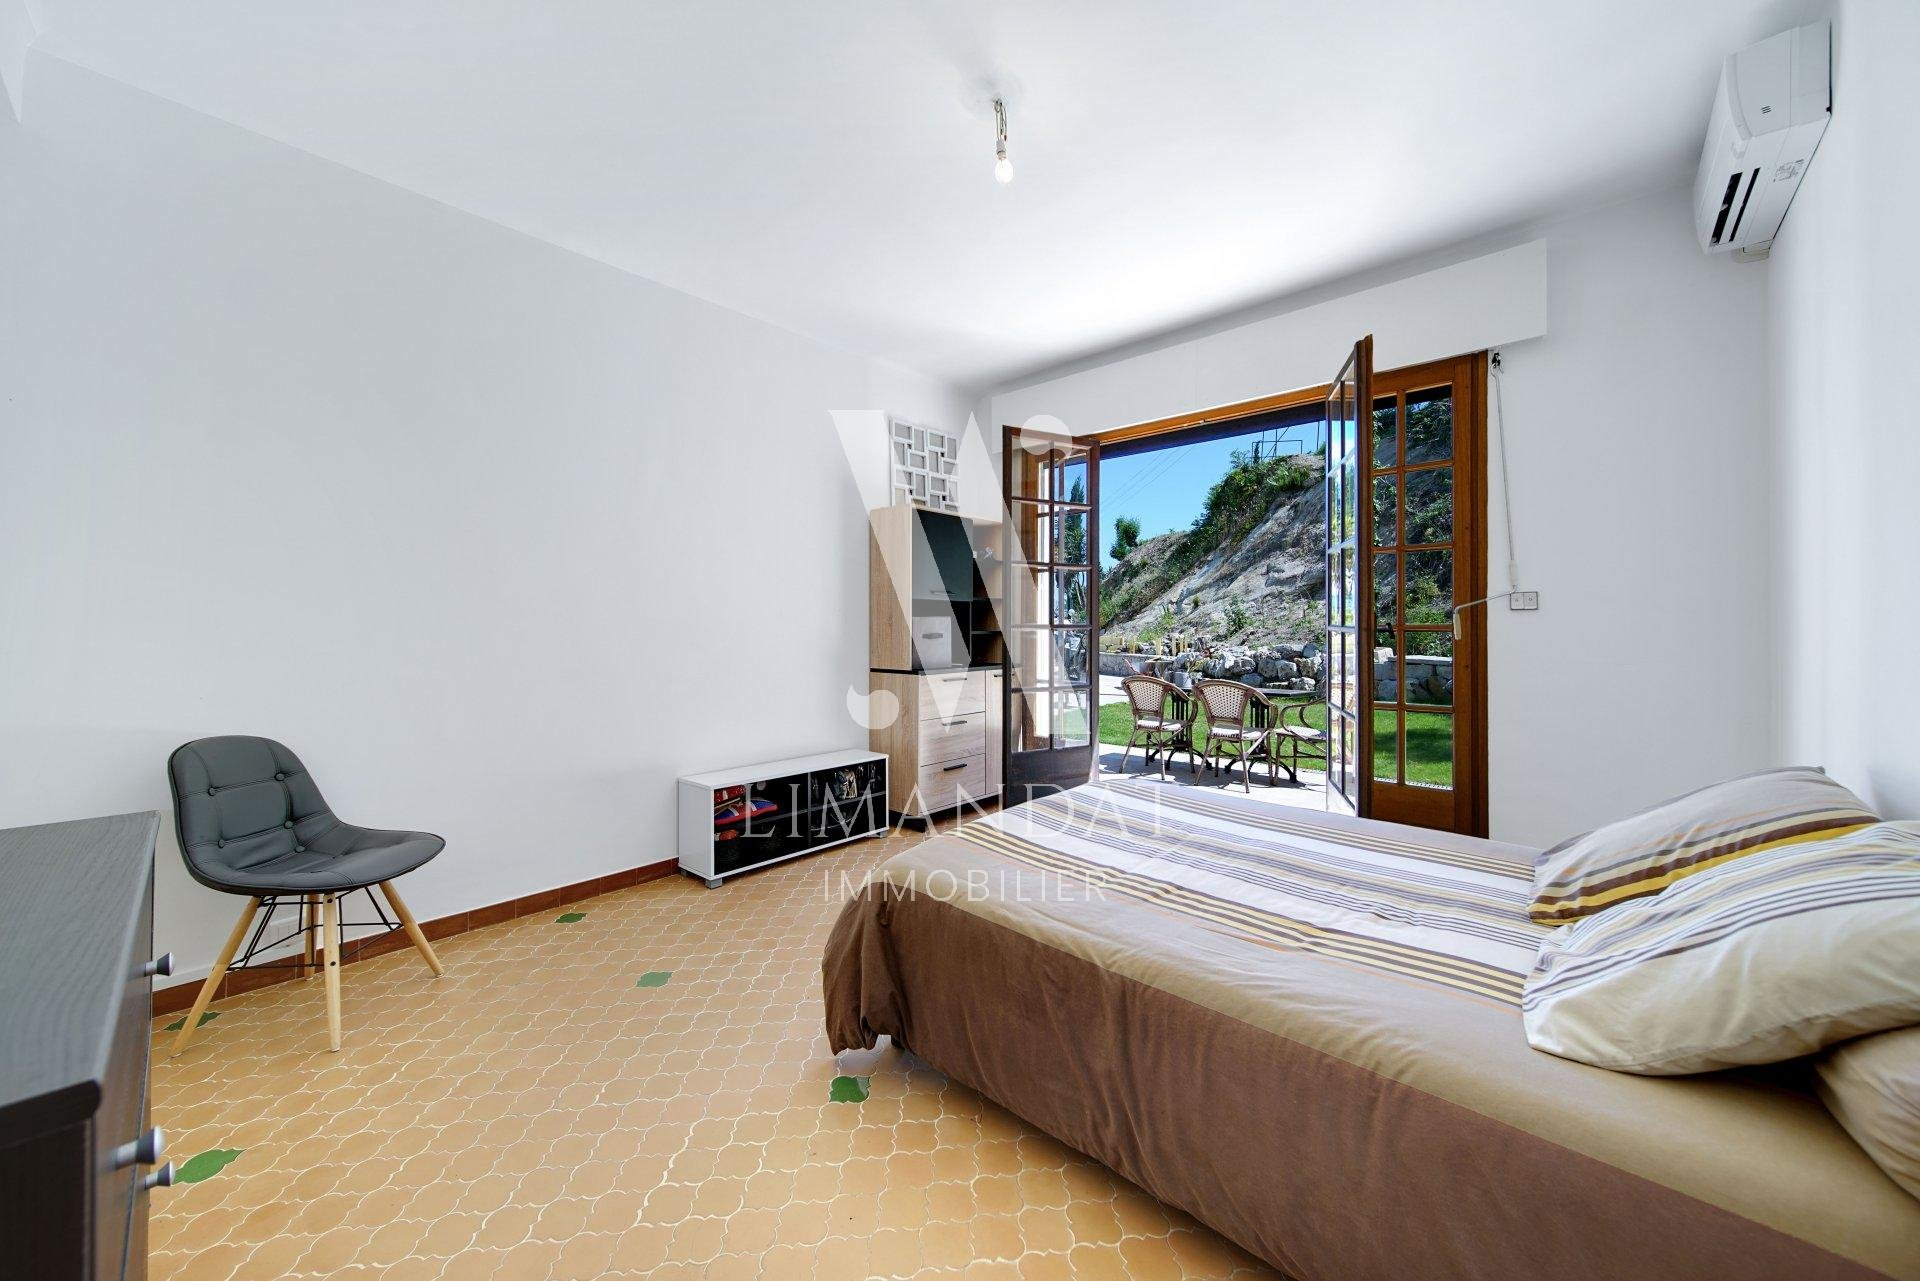 Menton - Villa 171 m2 garage 42 m2 land 2,350 m2 - construction potential